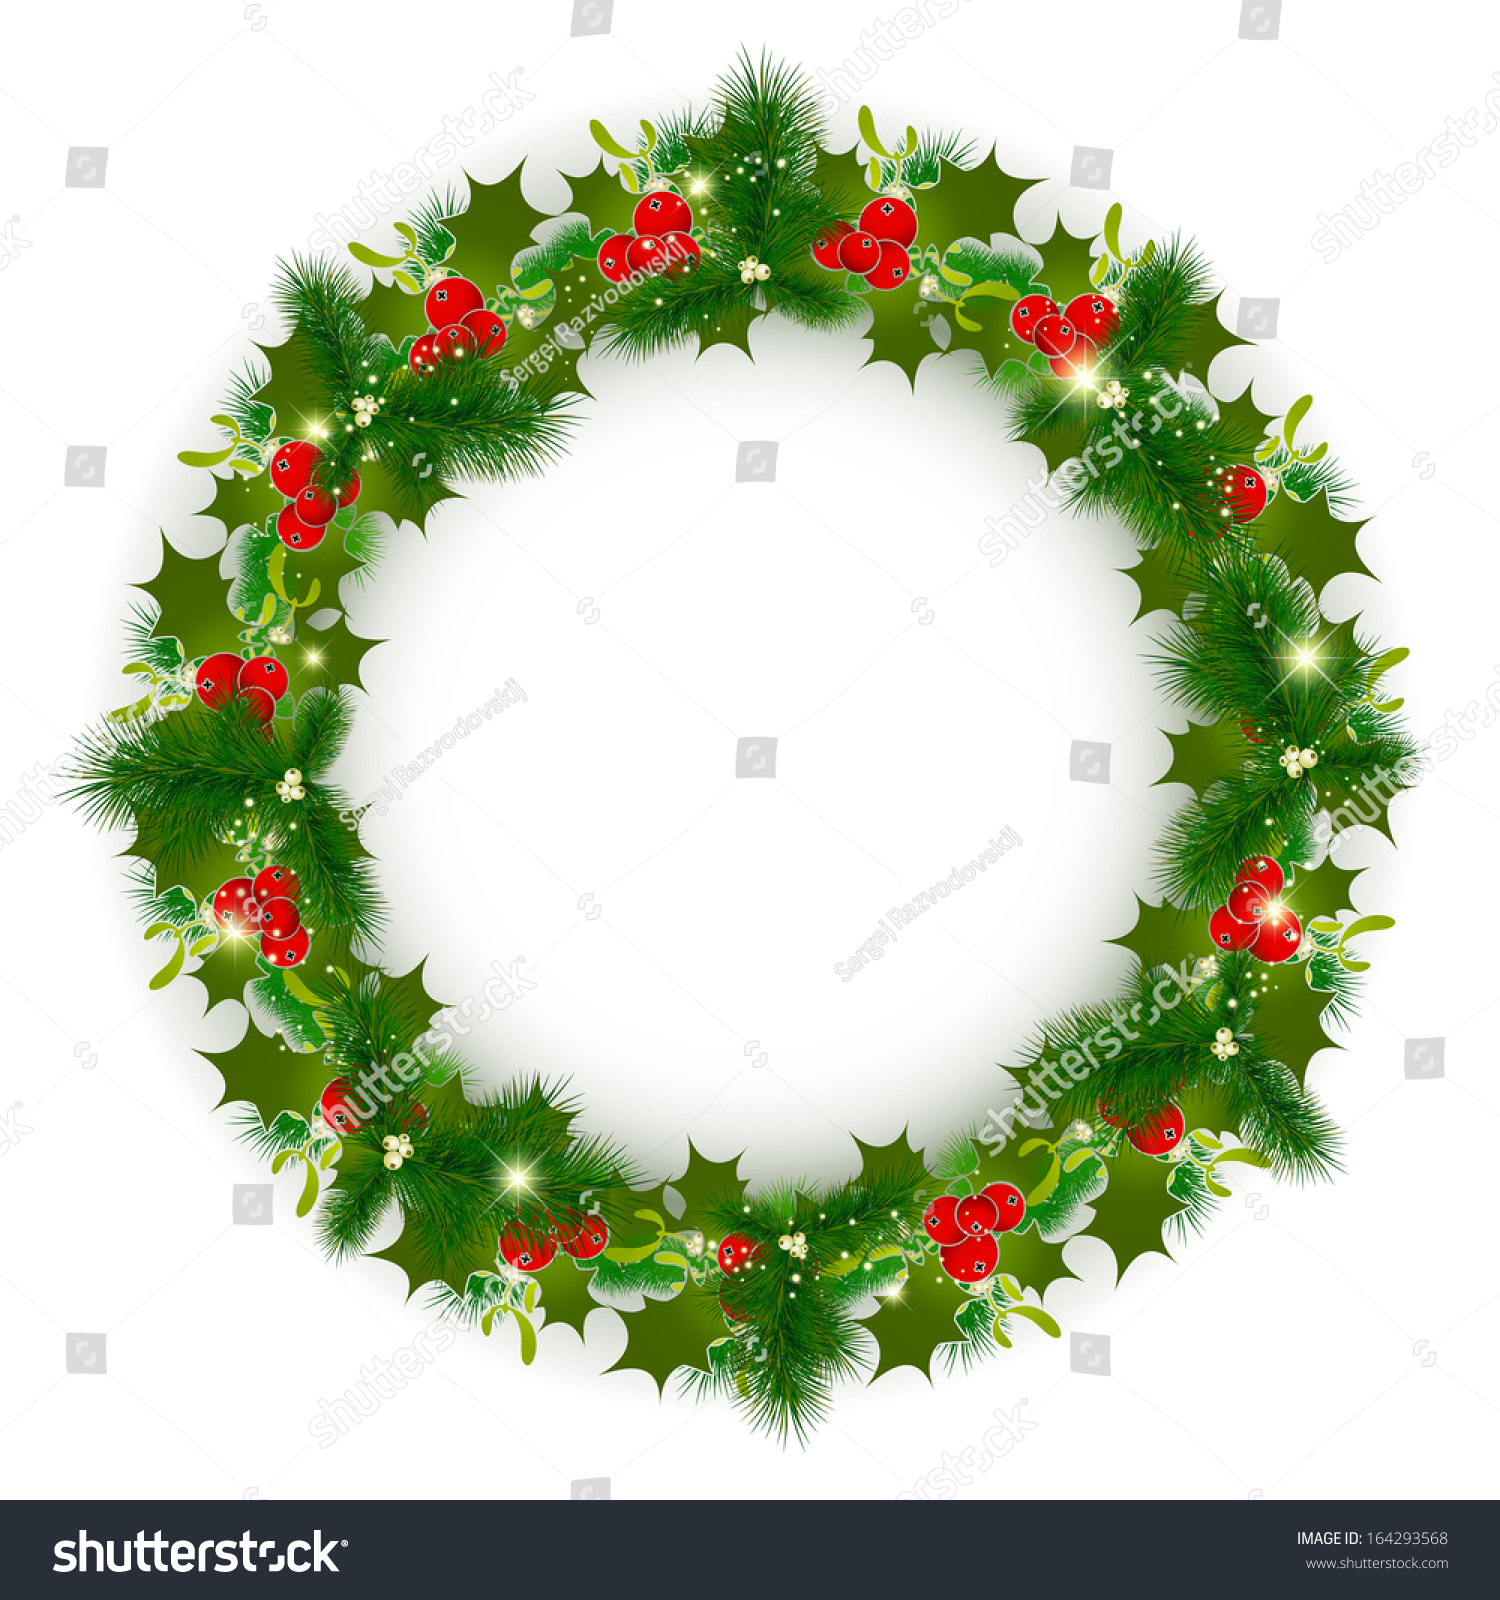 Decorated Christmas Wreath Over White Background, Copyspace | EZ Canvas